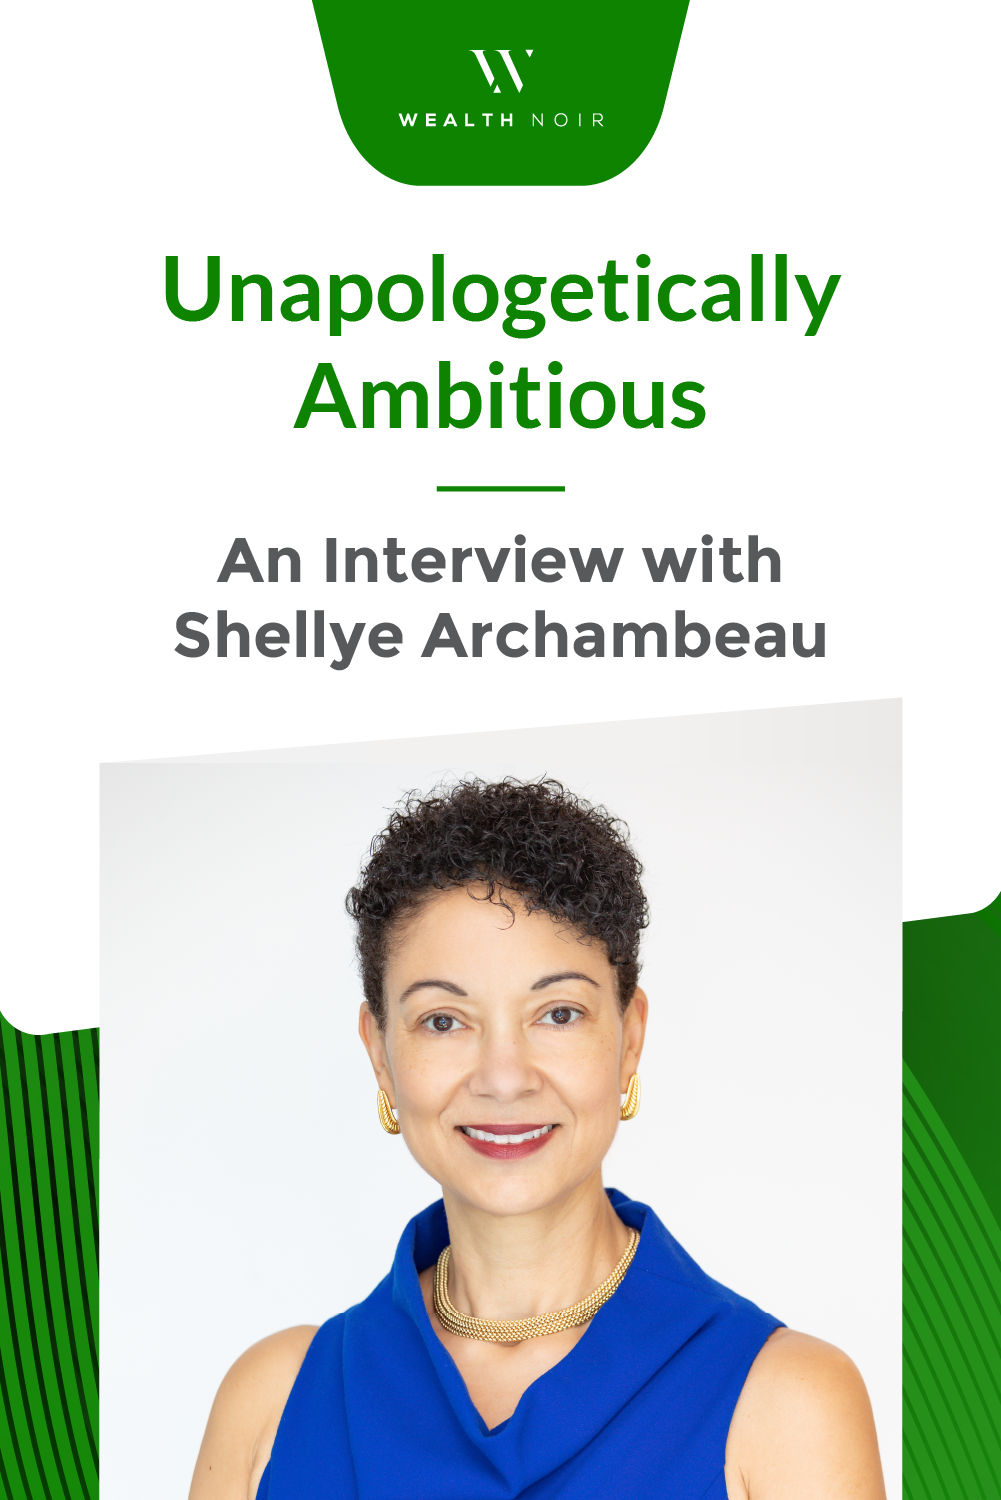 Unapologetically Ambitious: An Interview with Shellye Archambeau